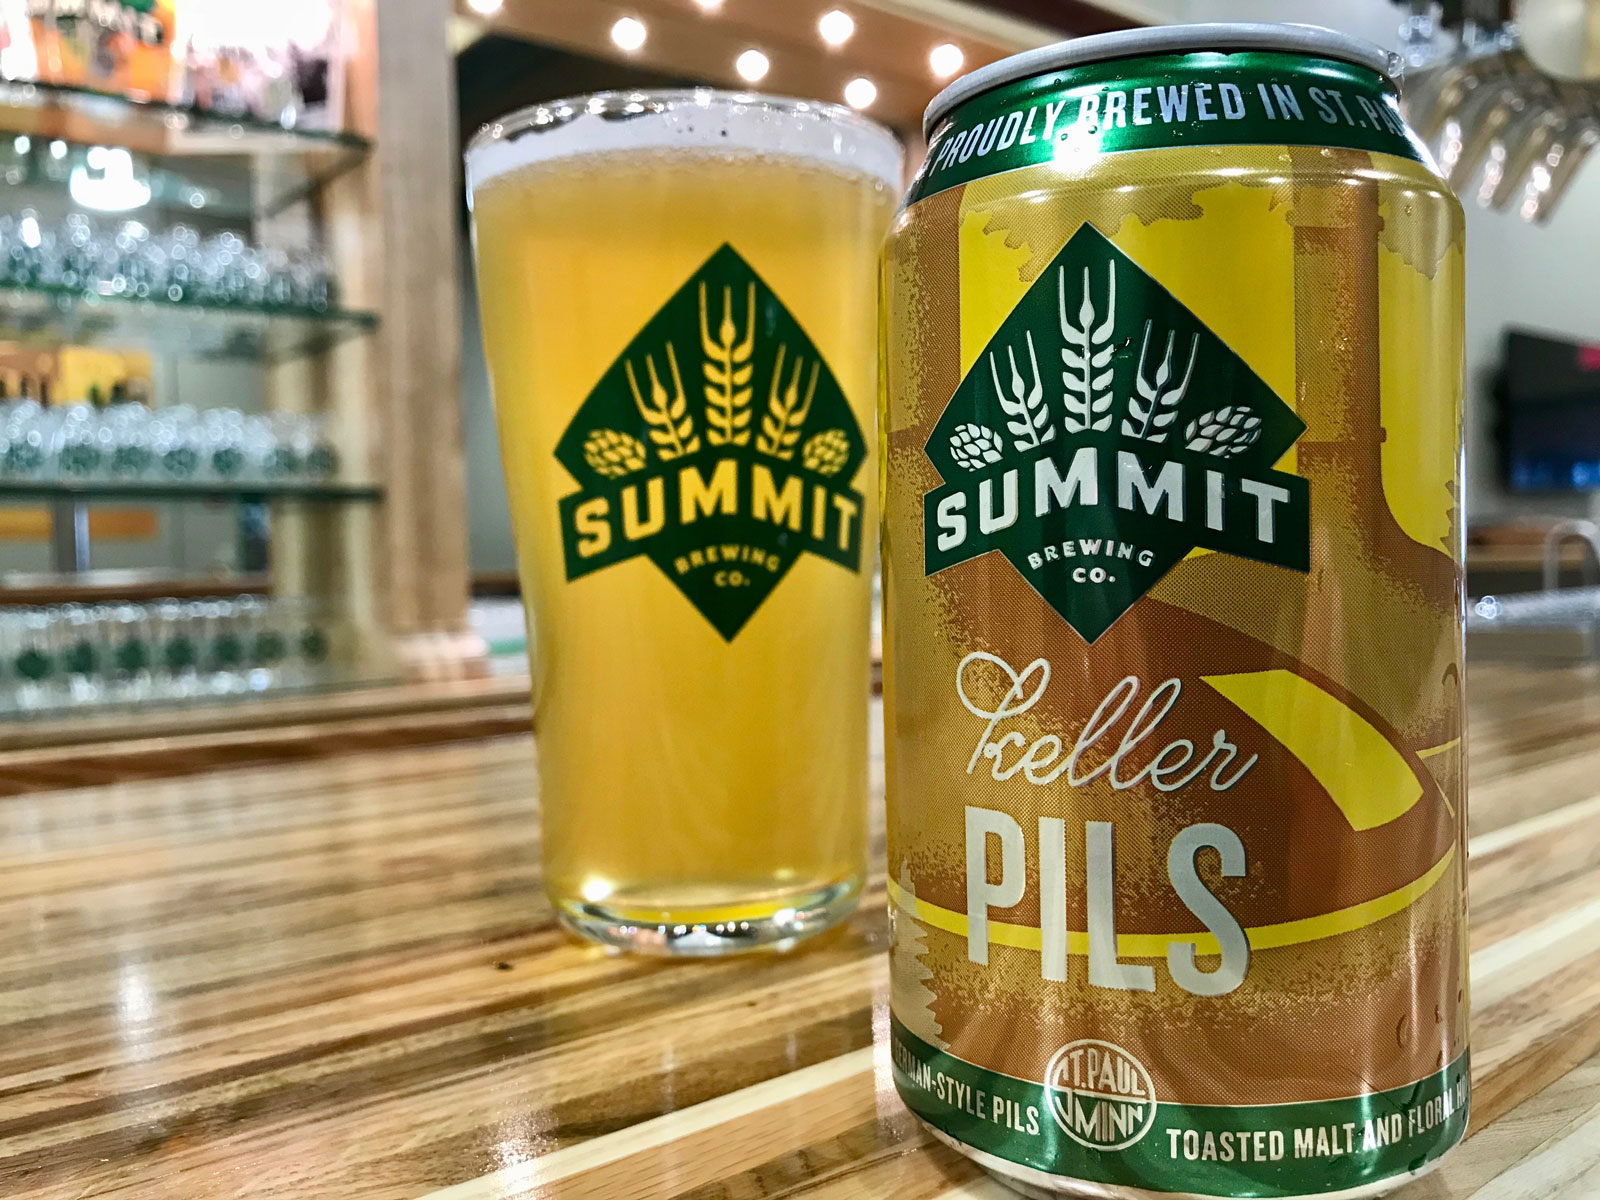 Keller Pils by Summit Brewing Co.